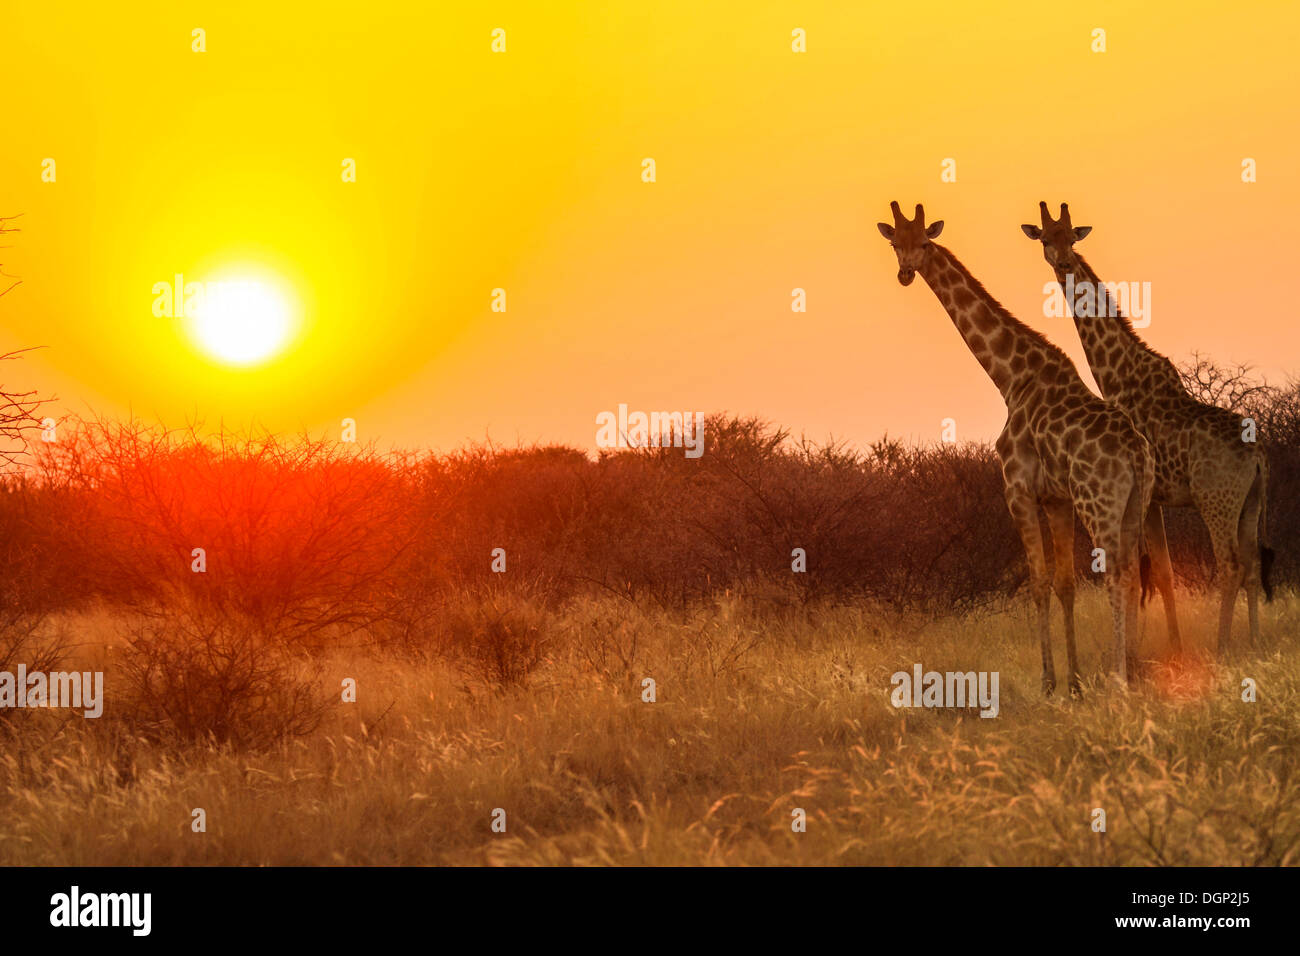 Giraffes (Giraffa camelopardalis) in front of sunset, Namibia, Africa - Stock Image